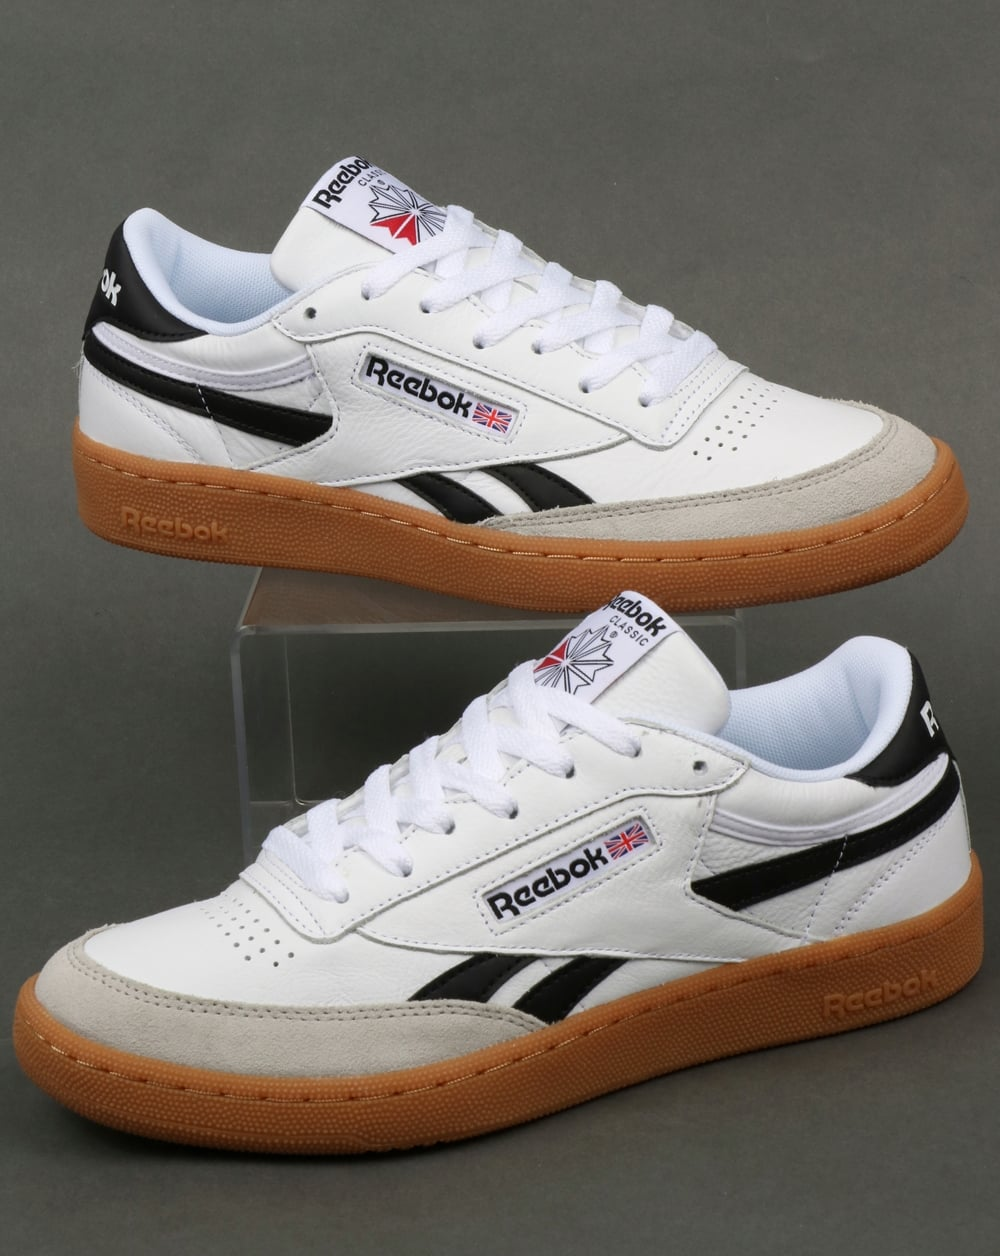 Reebok Reebok Revenge Plus Gum Trainers White Snowy Grey Black 242353c66